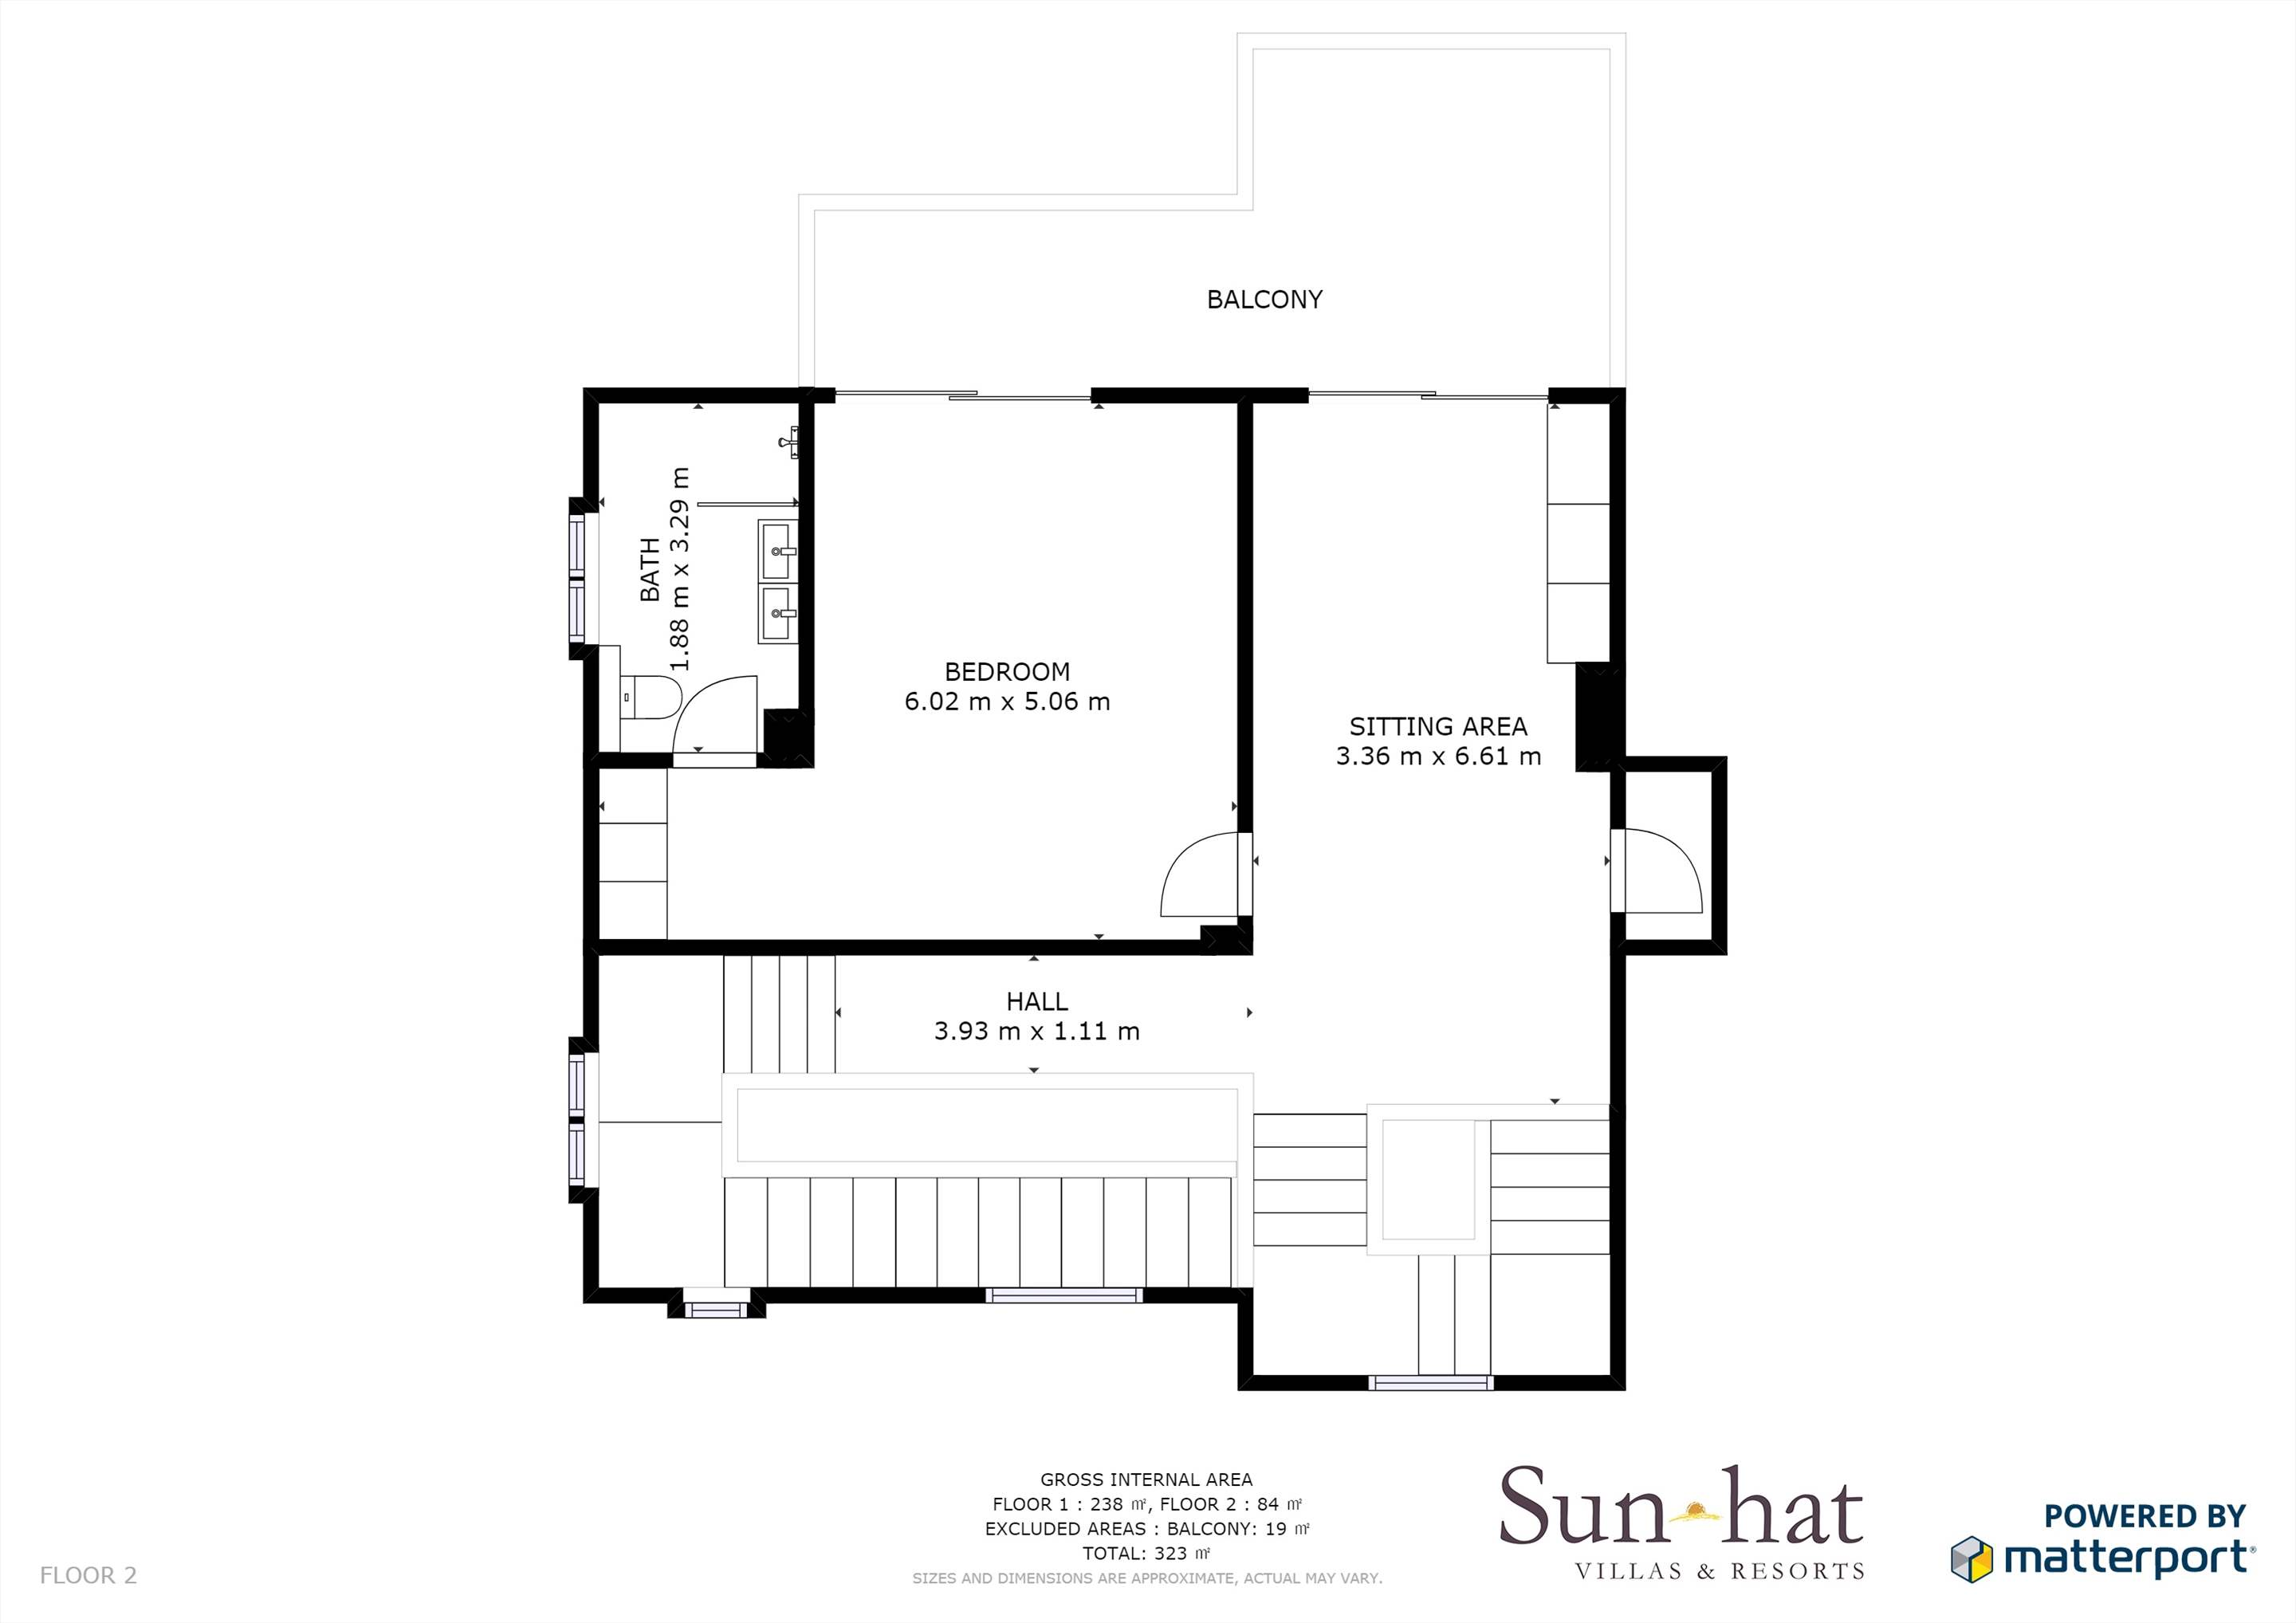 Villa Mar Azul Floorplan #2